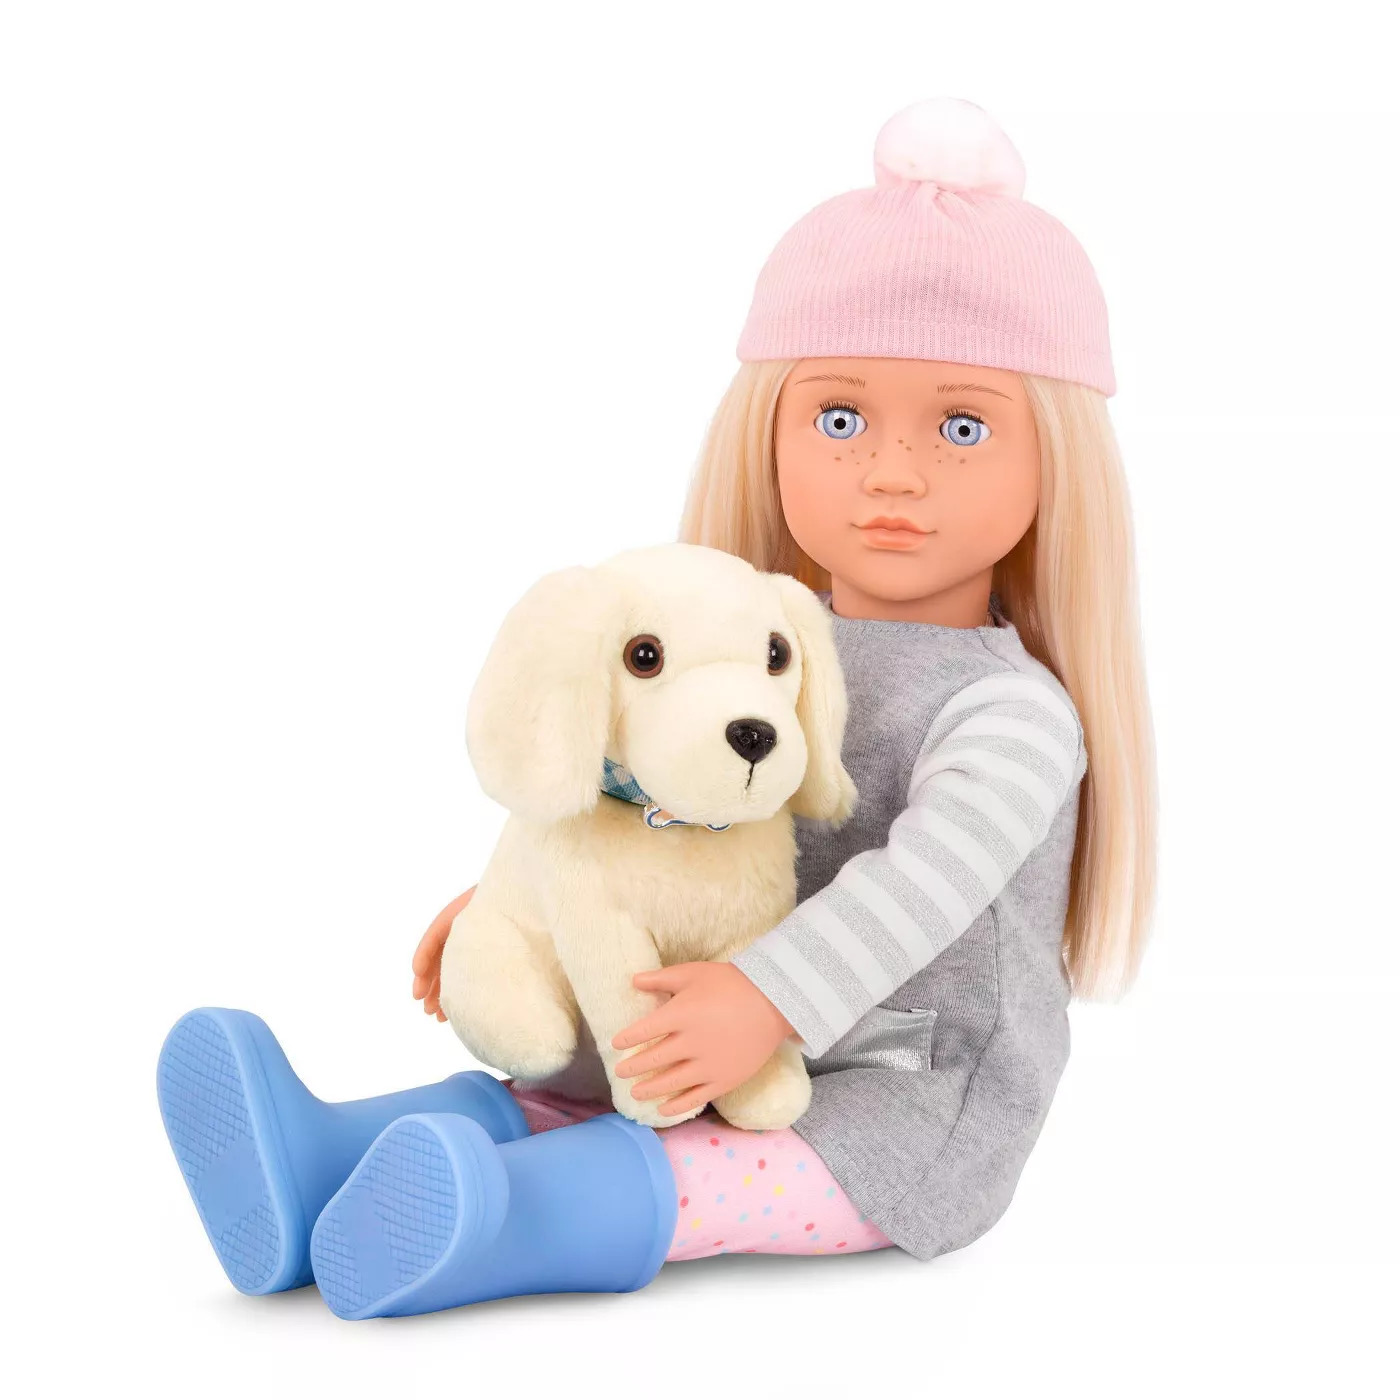 "Our Generation: 18"" Doll & Puppy Set - Megan image"